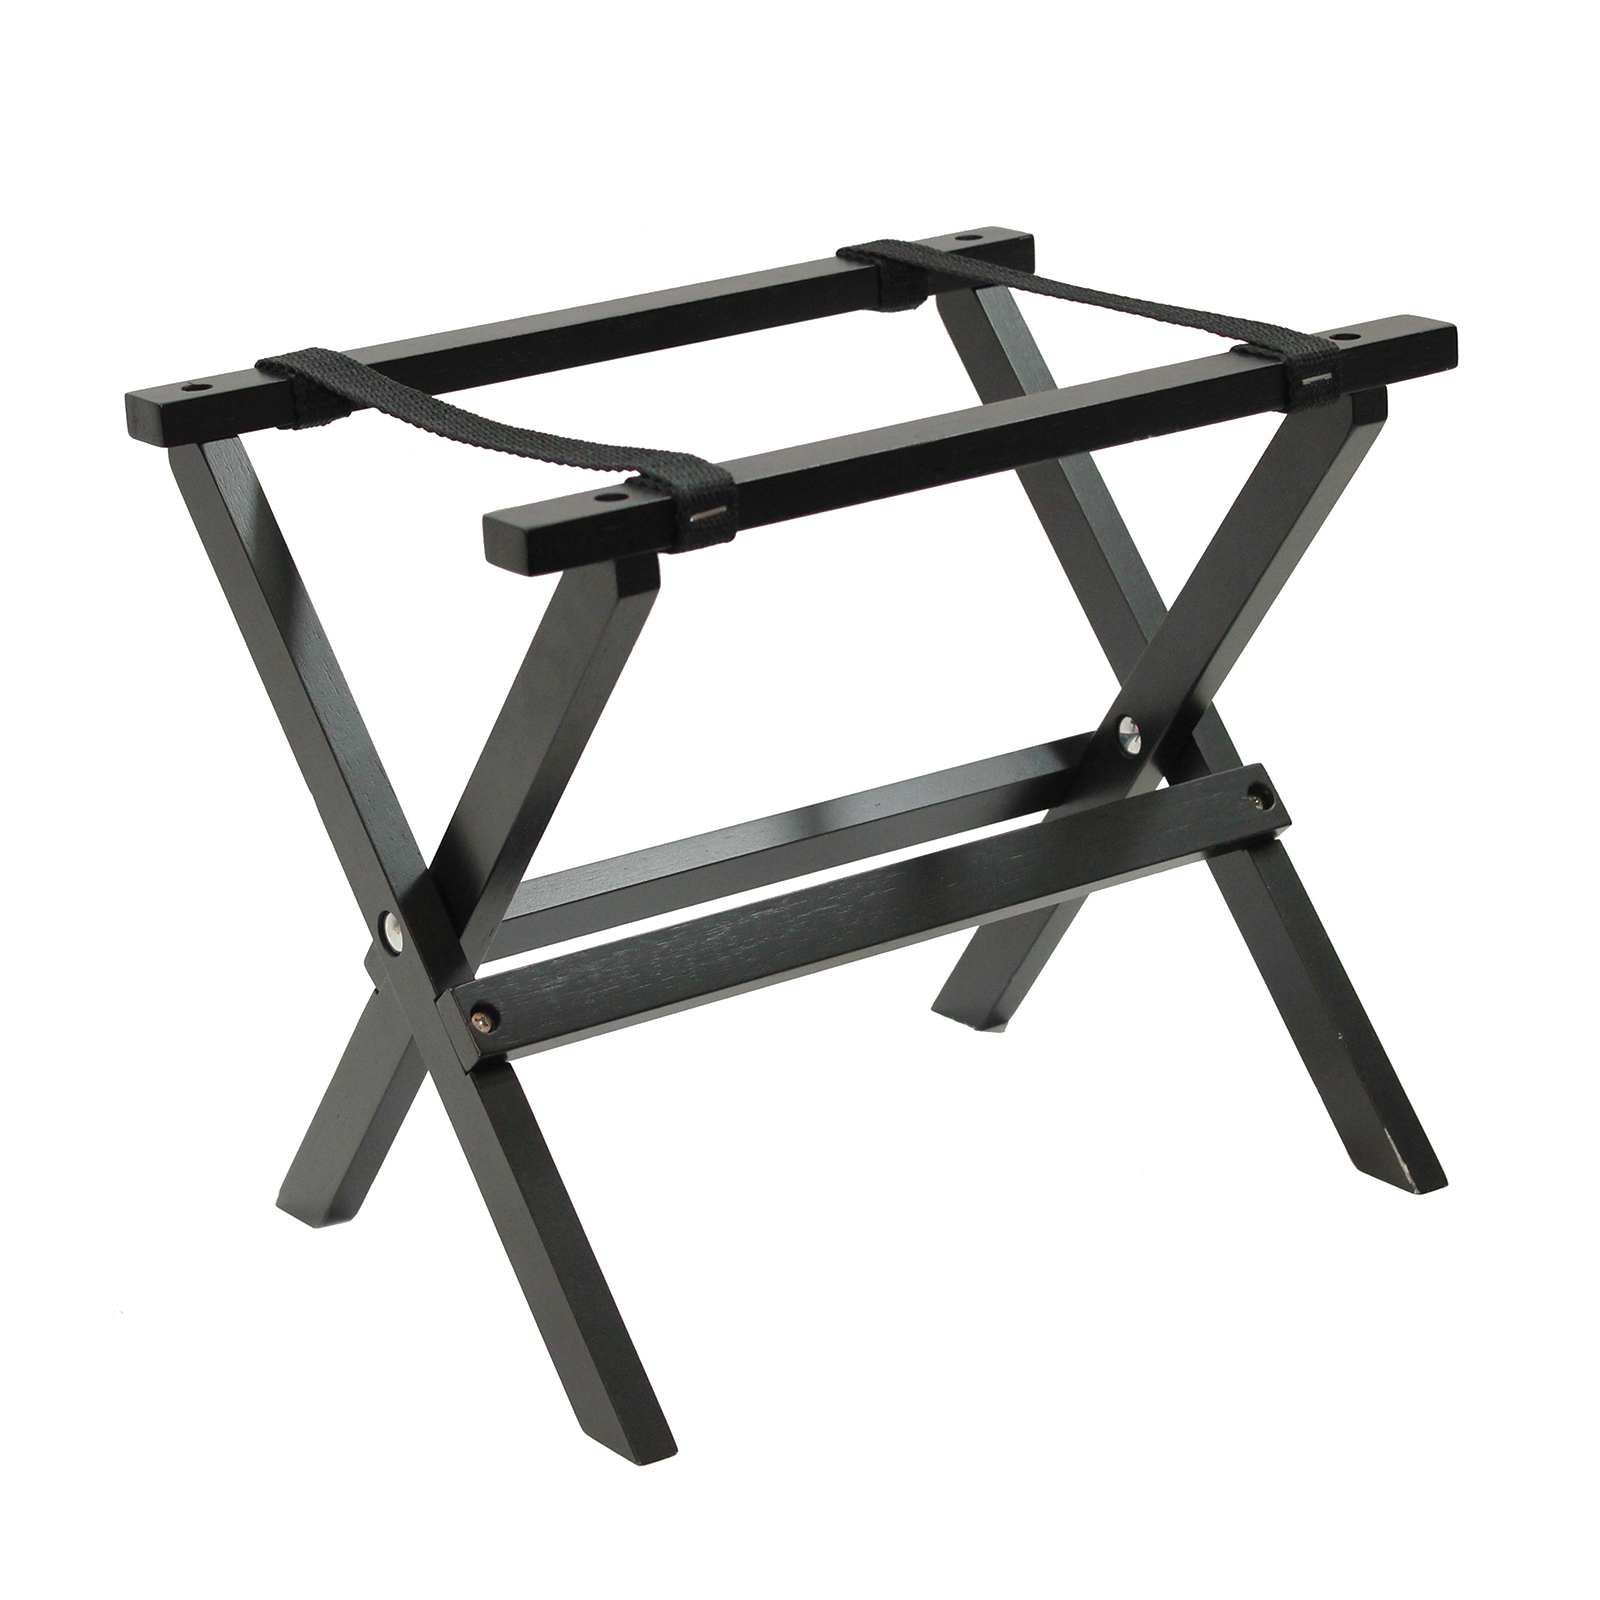 TableCraft Products RTT21BK tray stand